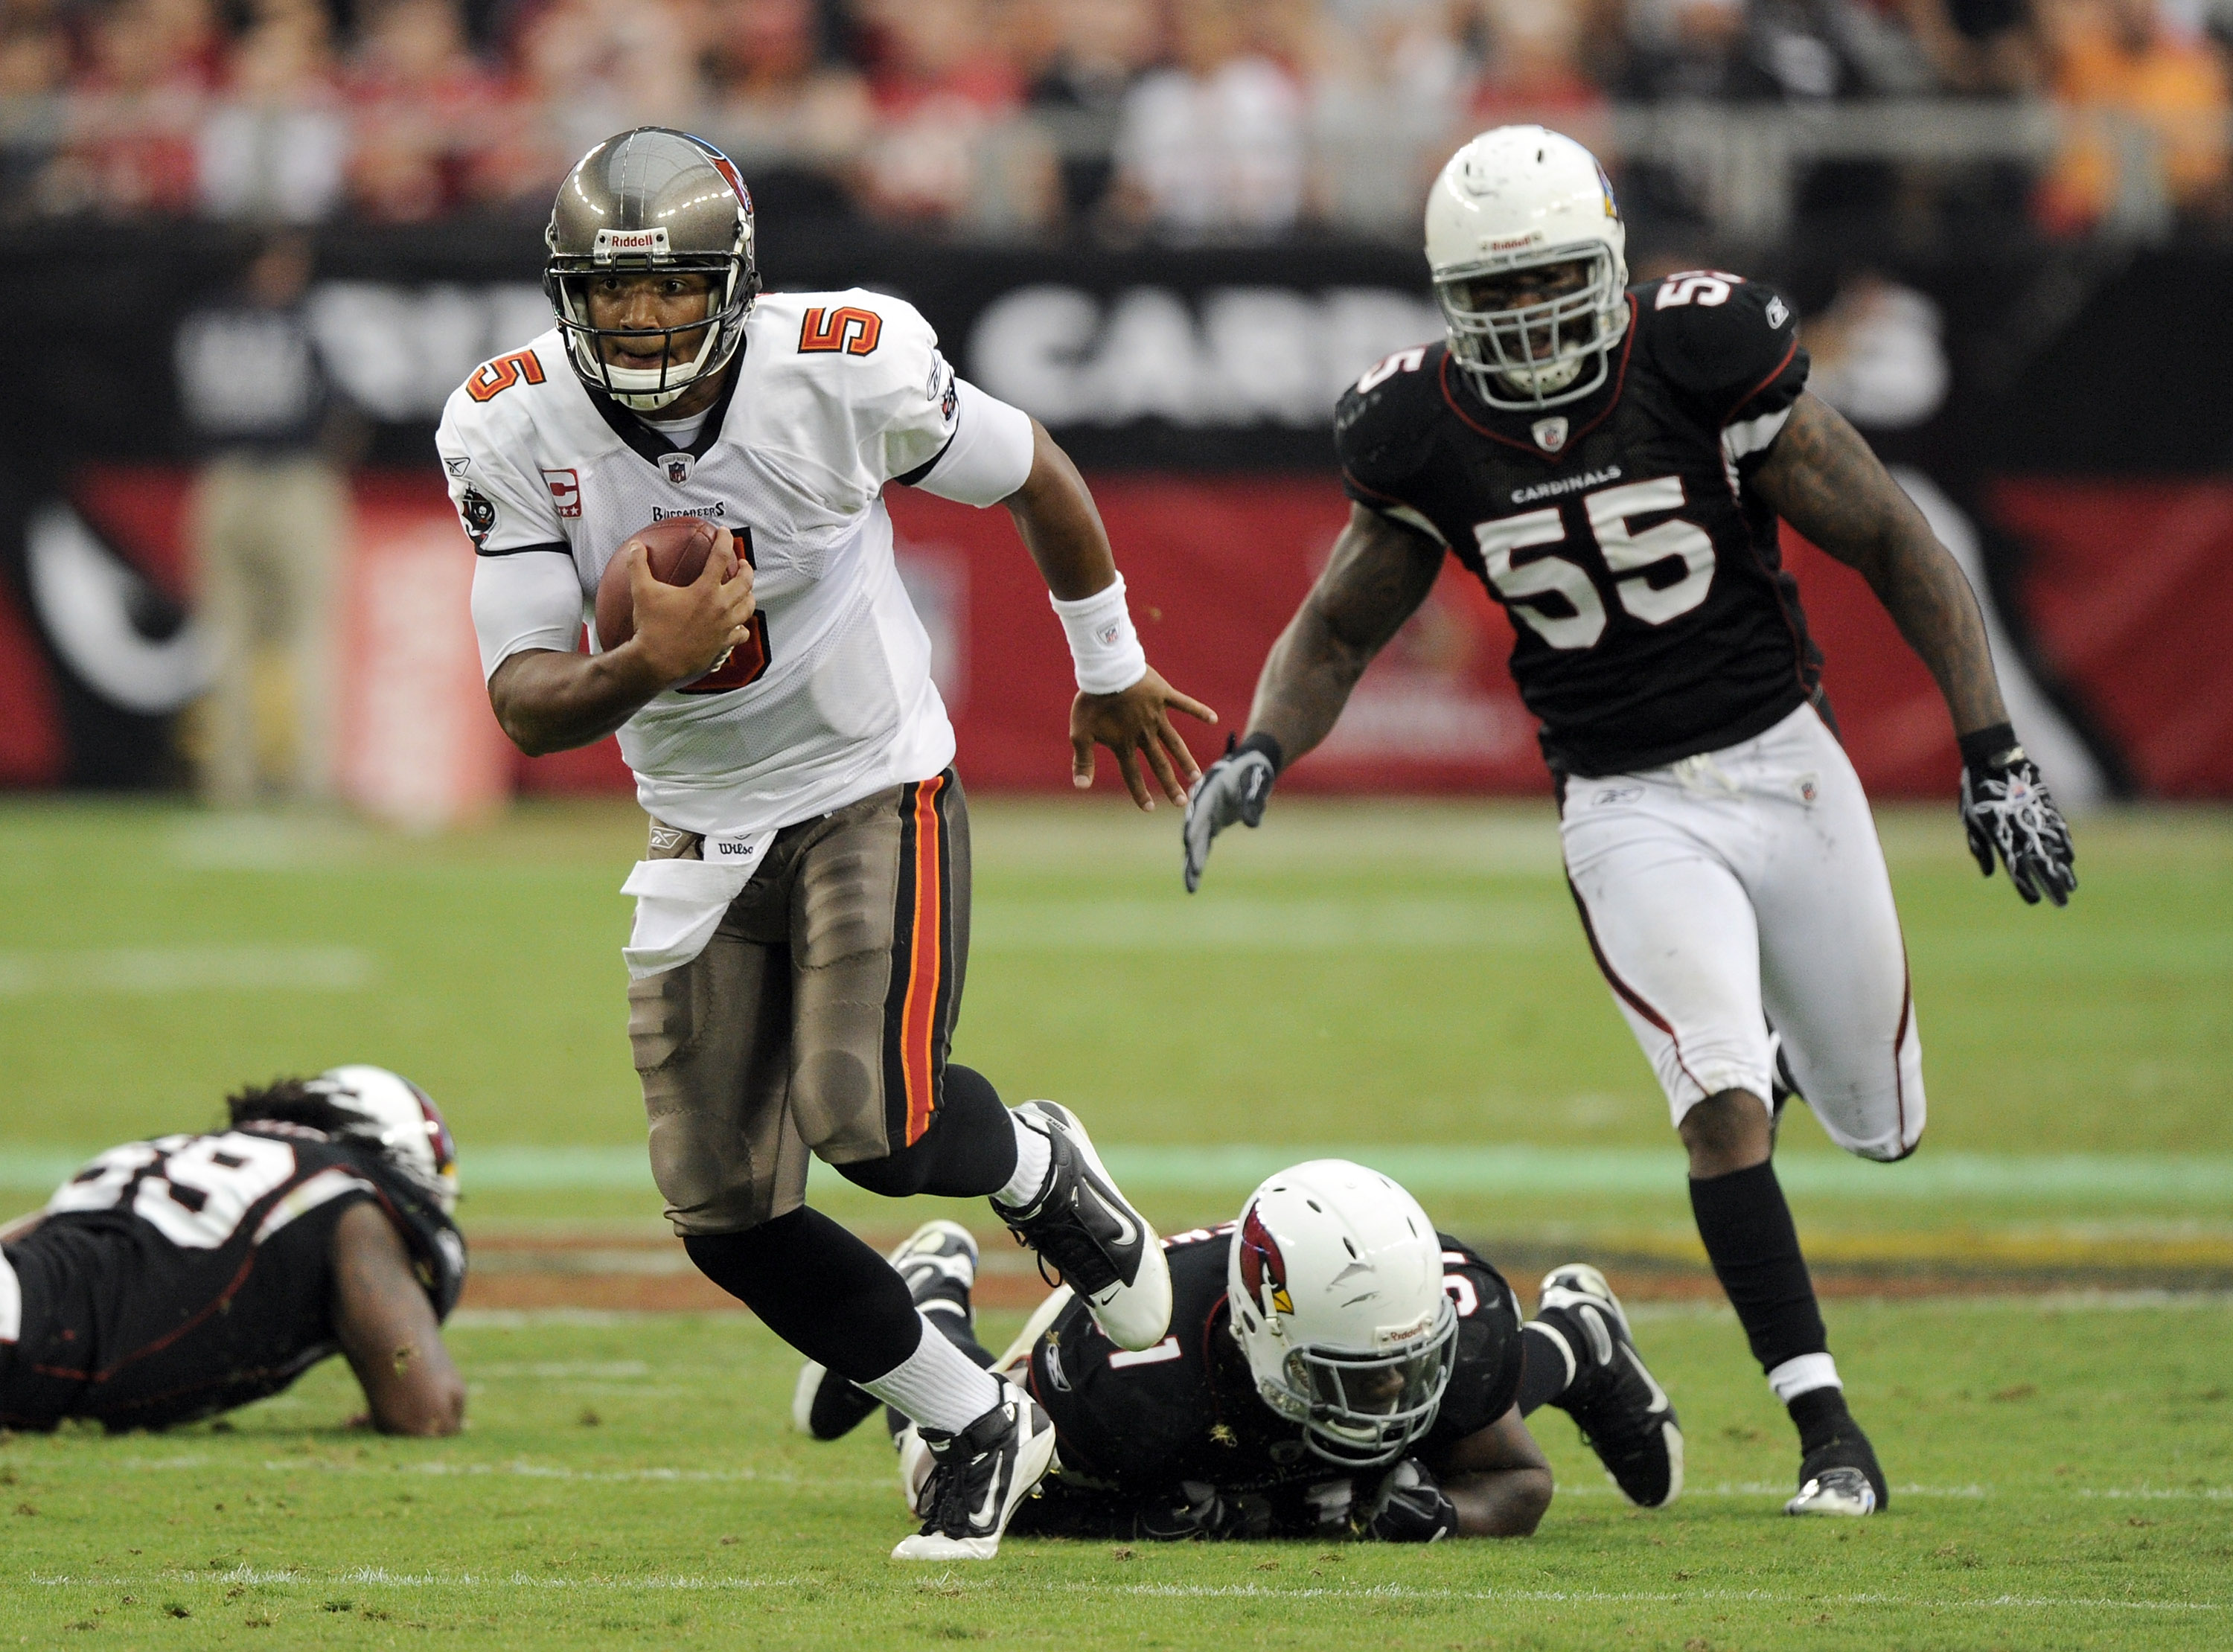 GLENDALE, AZ - OCTOBER 31:  Josh Freeman #5 of the Tampa Bay Buccaneers scrambles away from Joey Porter #55, Kenny Iwebema #91 and Will Davis #59 of the Arizona Cardinals during the third quarter at University of Phoenix Stadium on October 31, 2010 in Gle